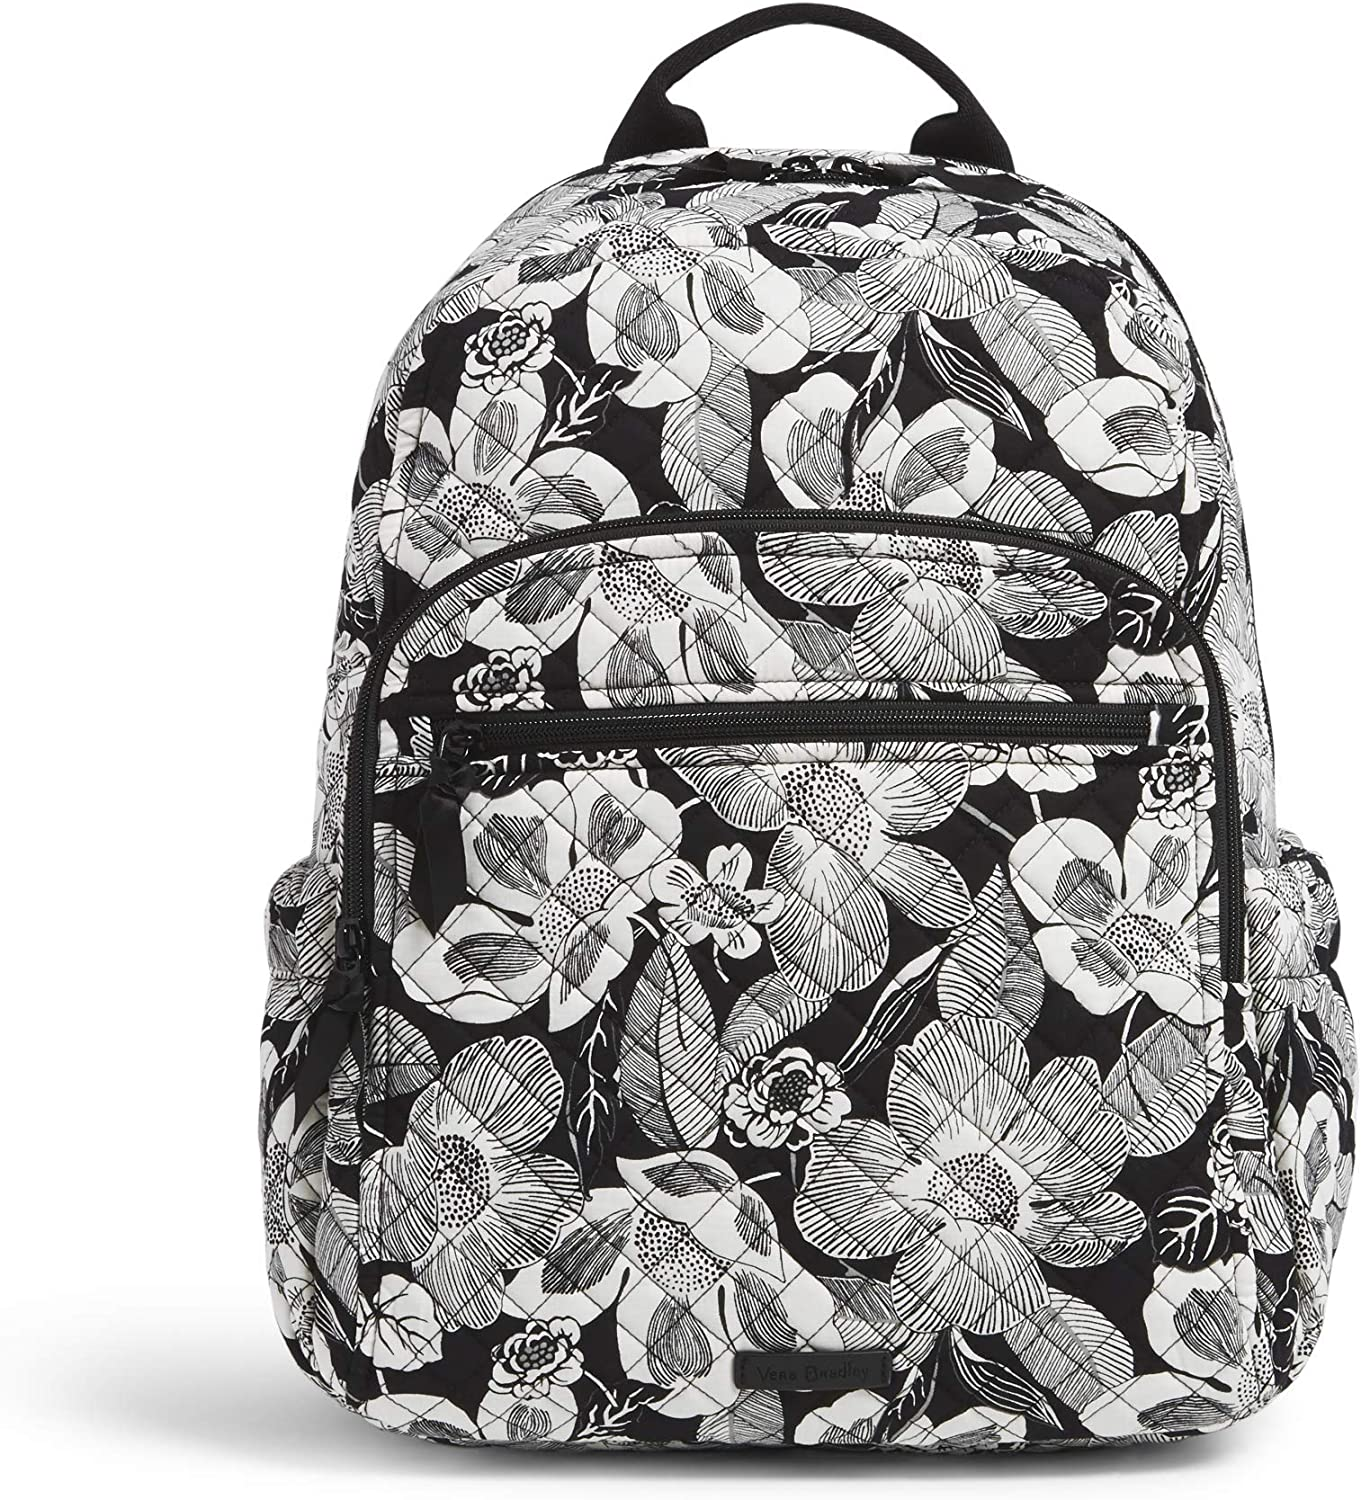 Vera Bradley Signature Cotton Campus Backpack for daily use